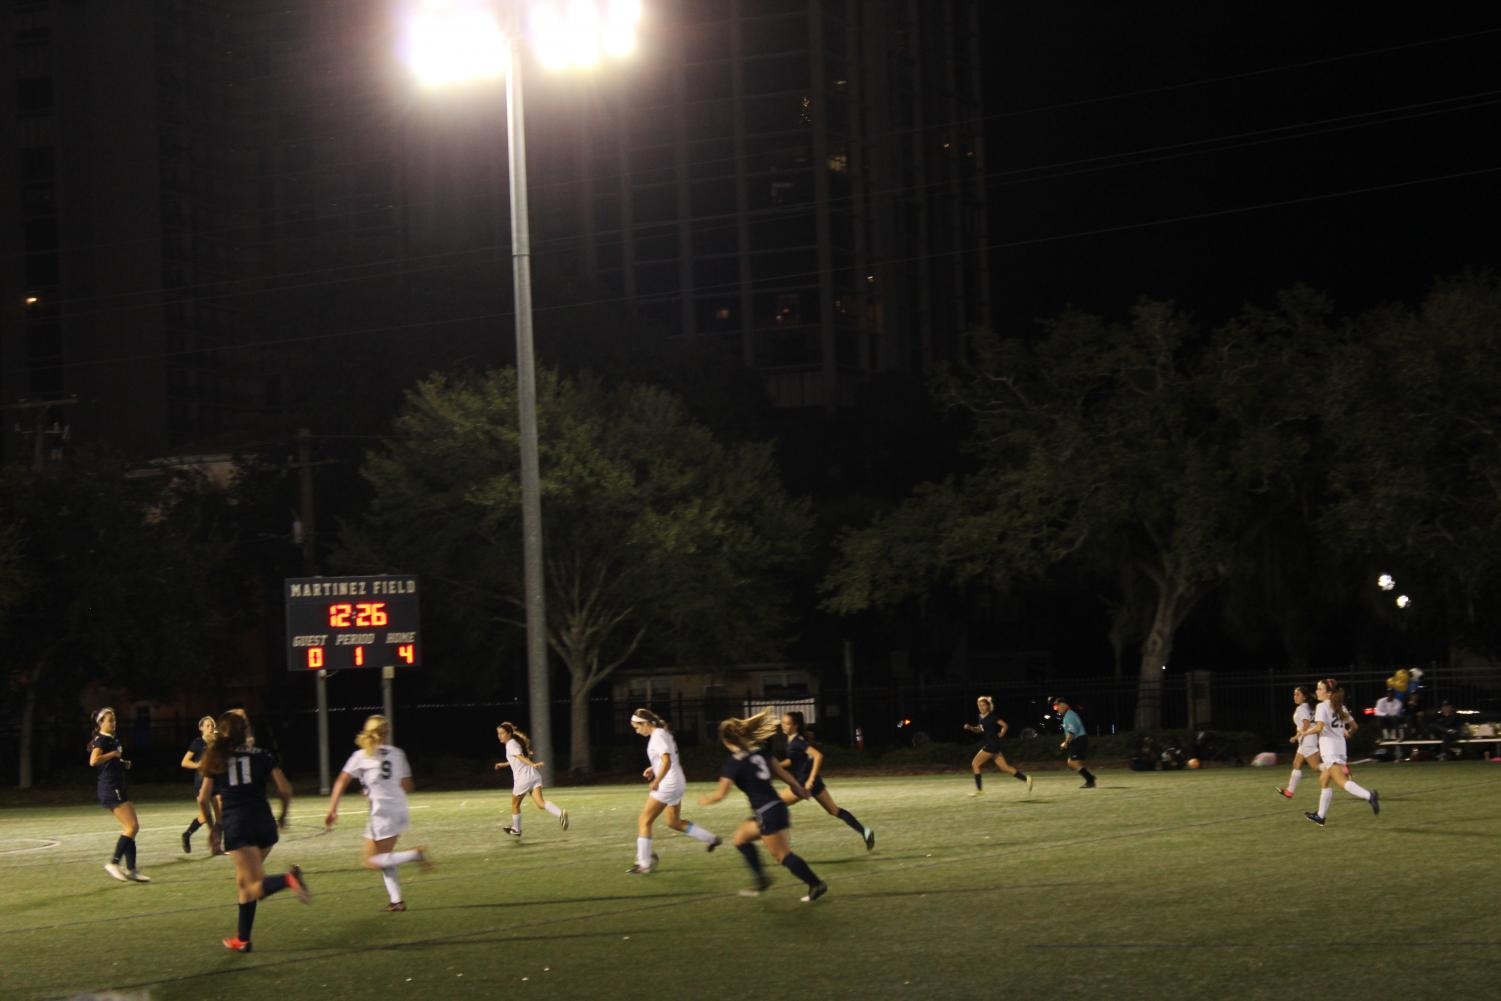 The Academy of the Holy Names soccer team is currently ranked 72 for high school girls' soccer teams in Florida.